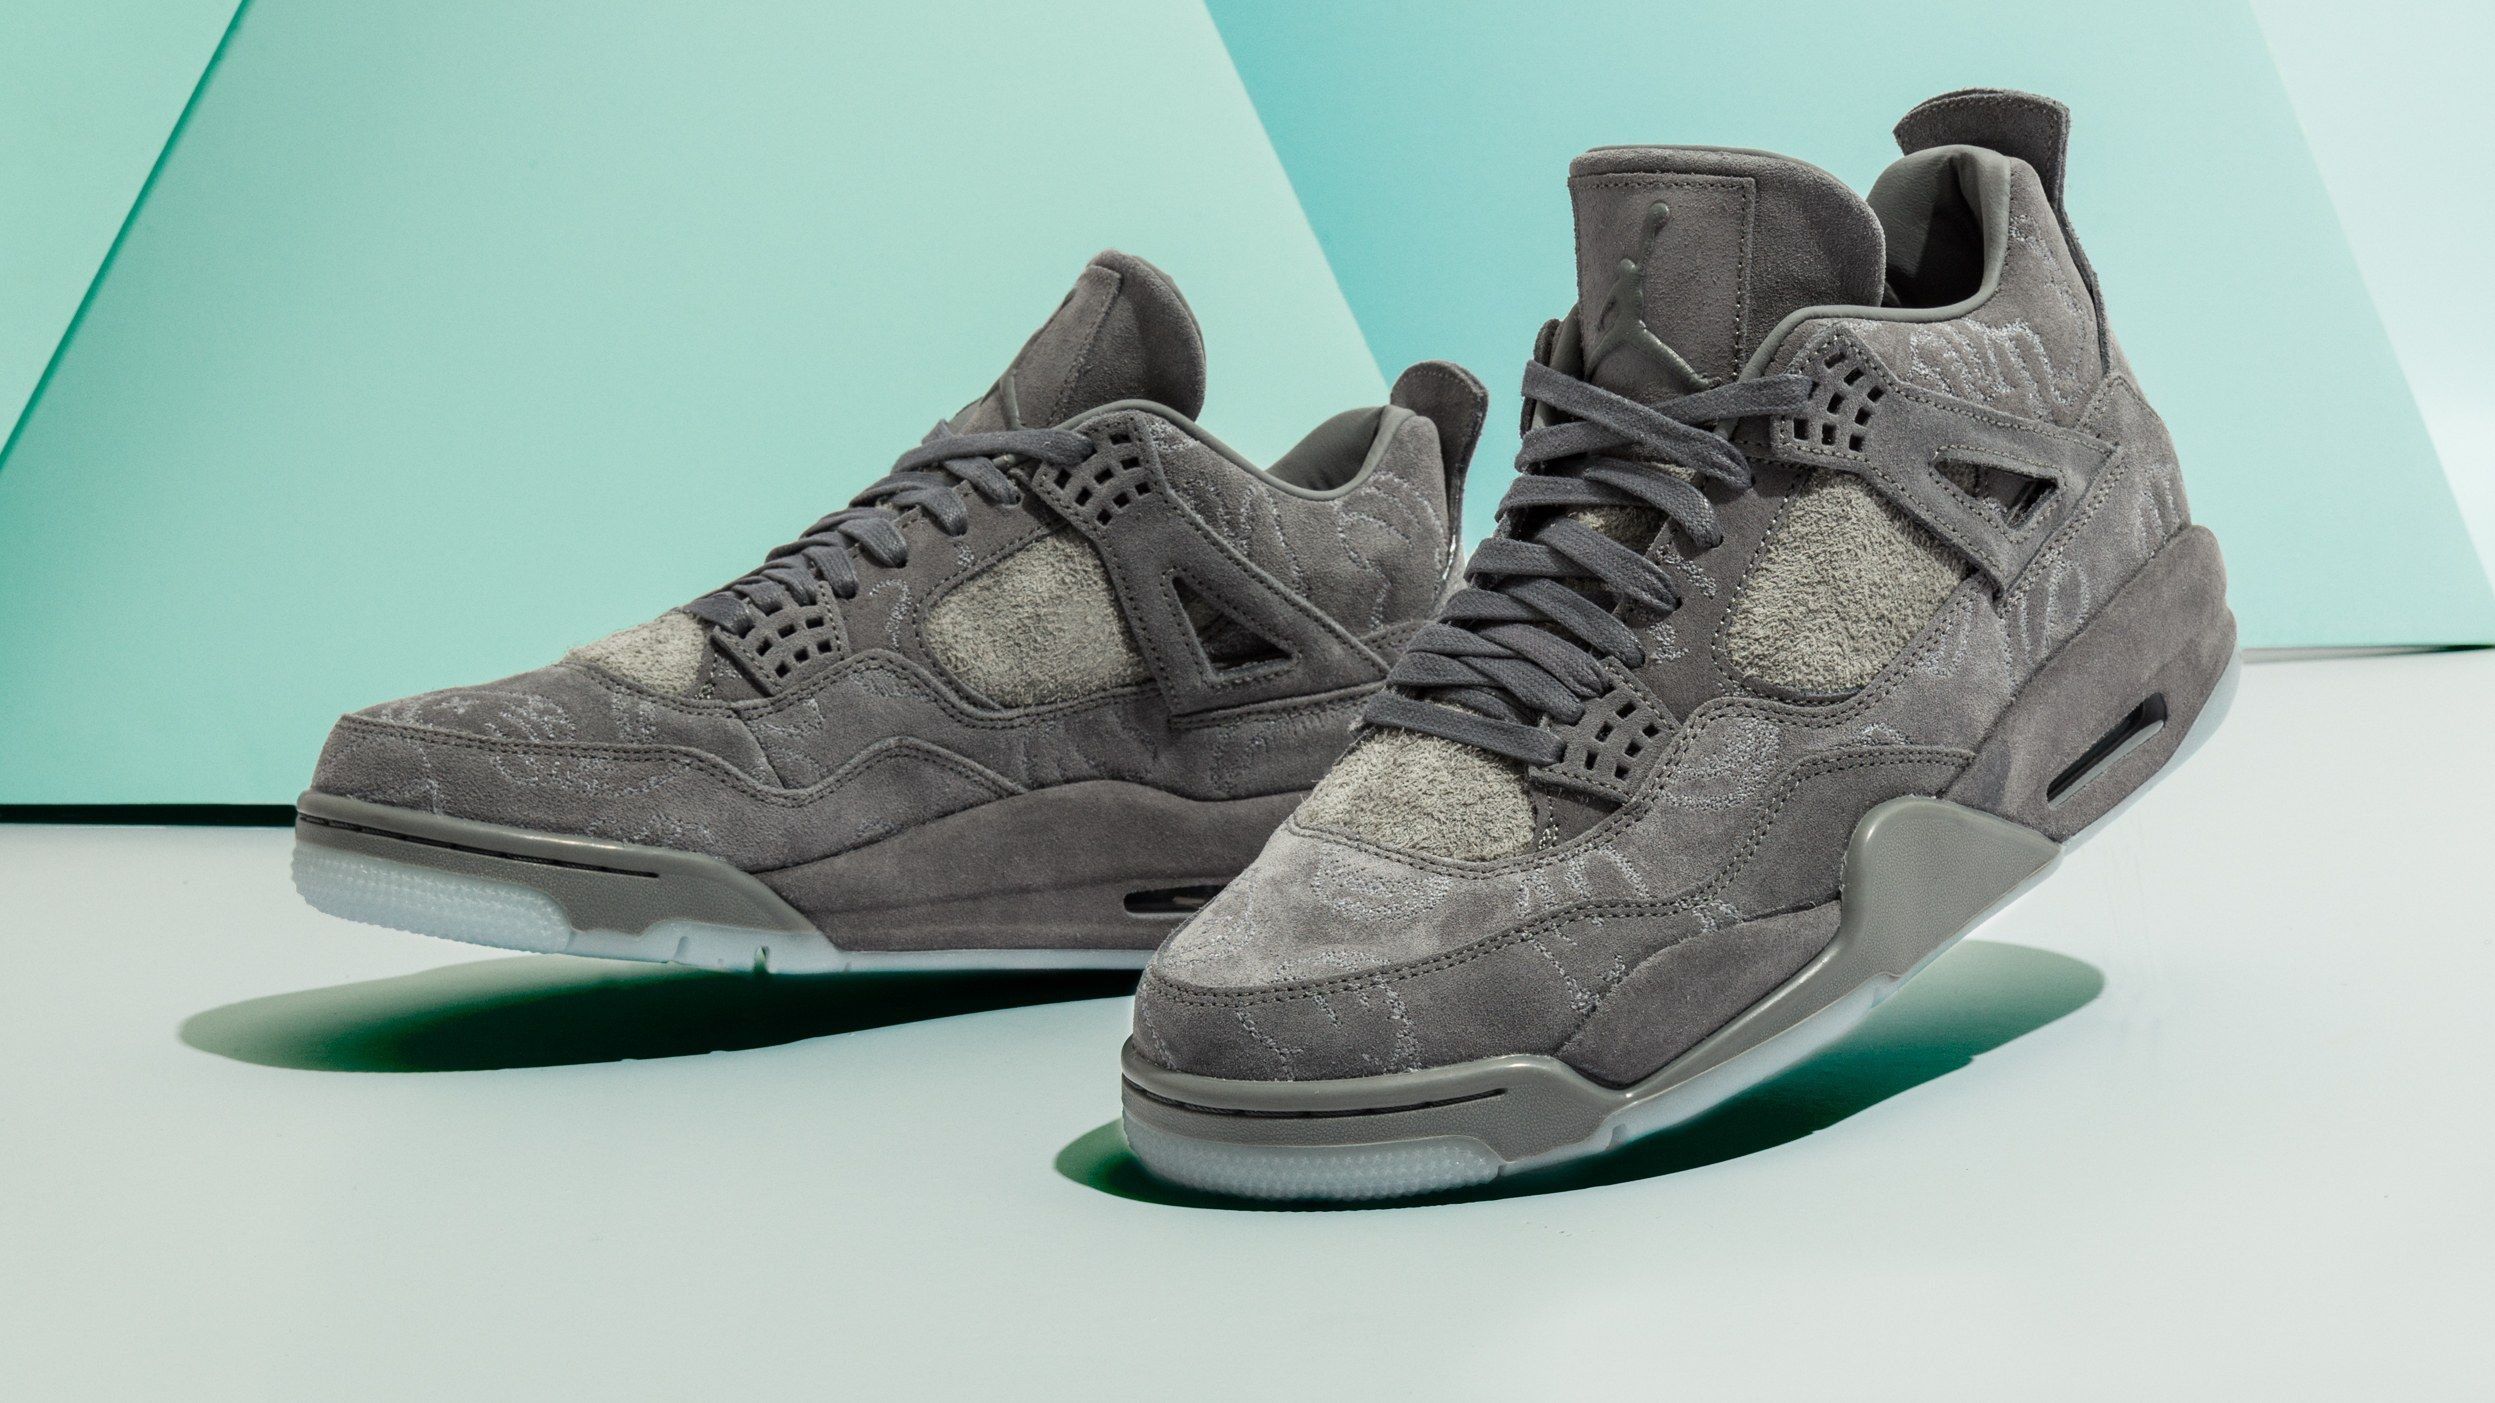 lowest price best choice hot sales The Kaws x Air Jordan 4s Are Even Better Up Close | Nike shoes ...